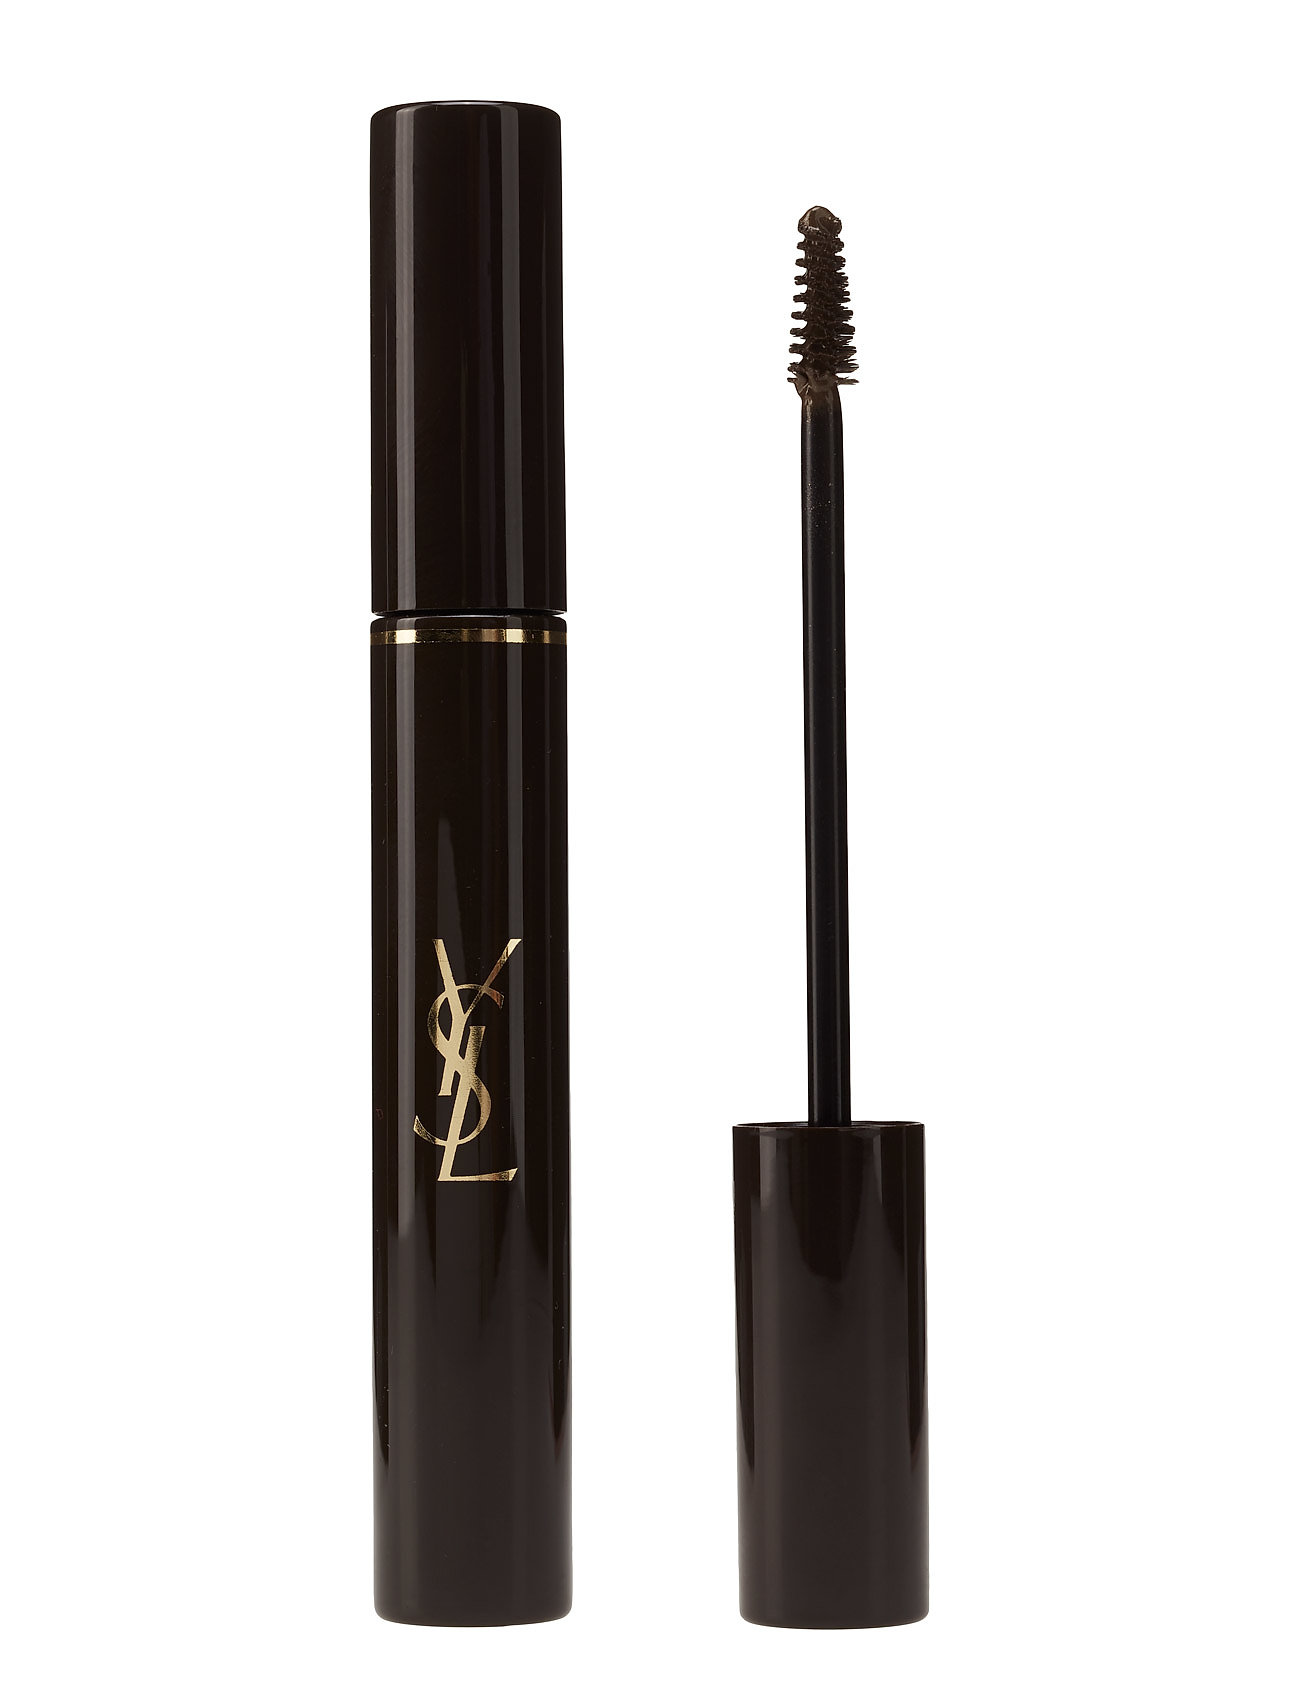 yves saint laurent Couture brow mascara på boozt.com dk